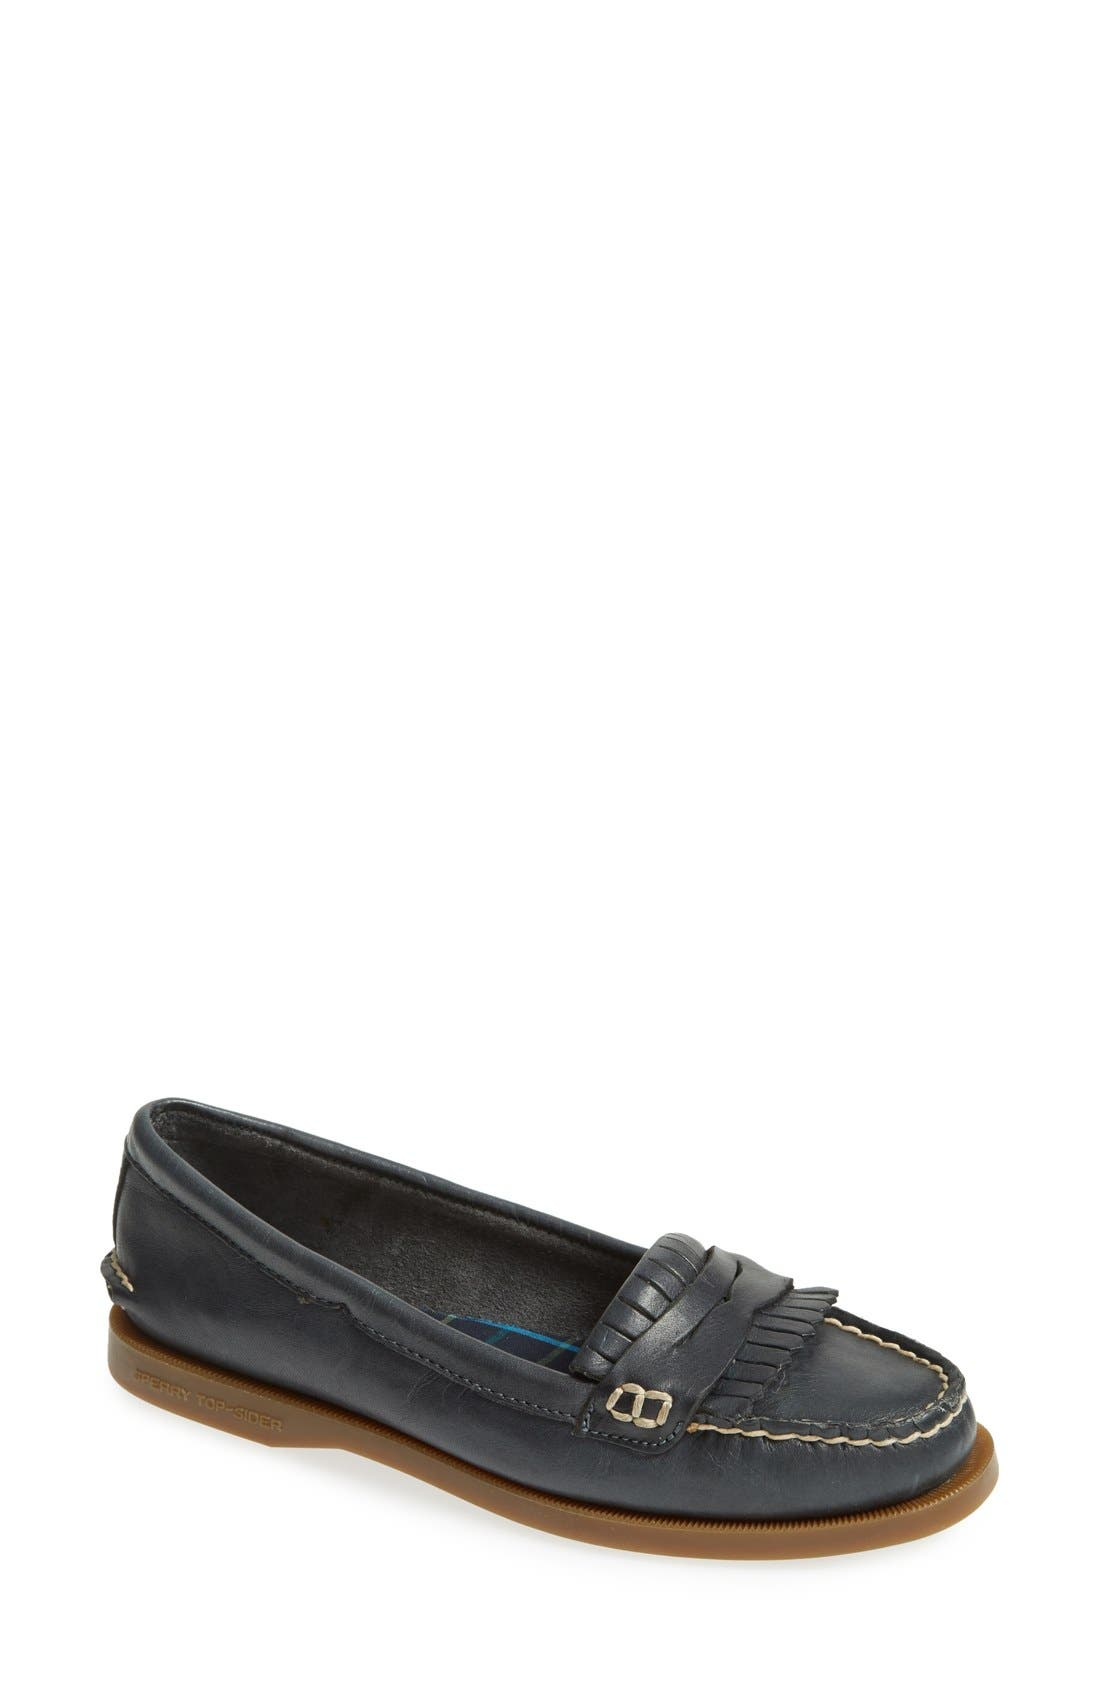 Main Image - Sperry Top-Sider® 'Avery' Leather Loafer (Women)